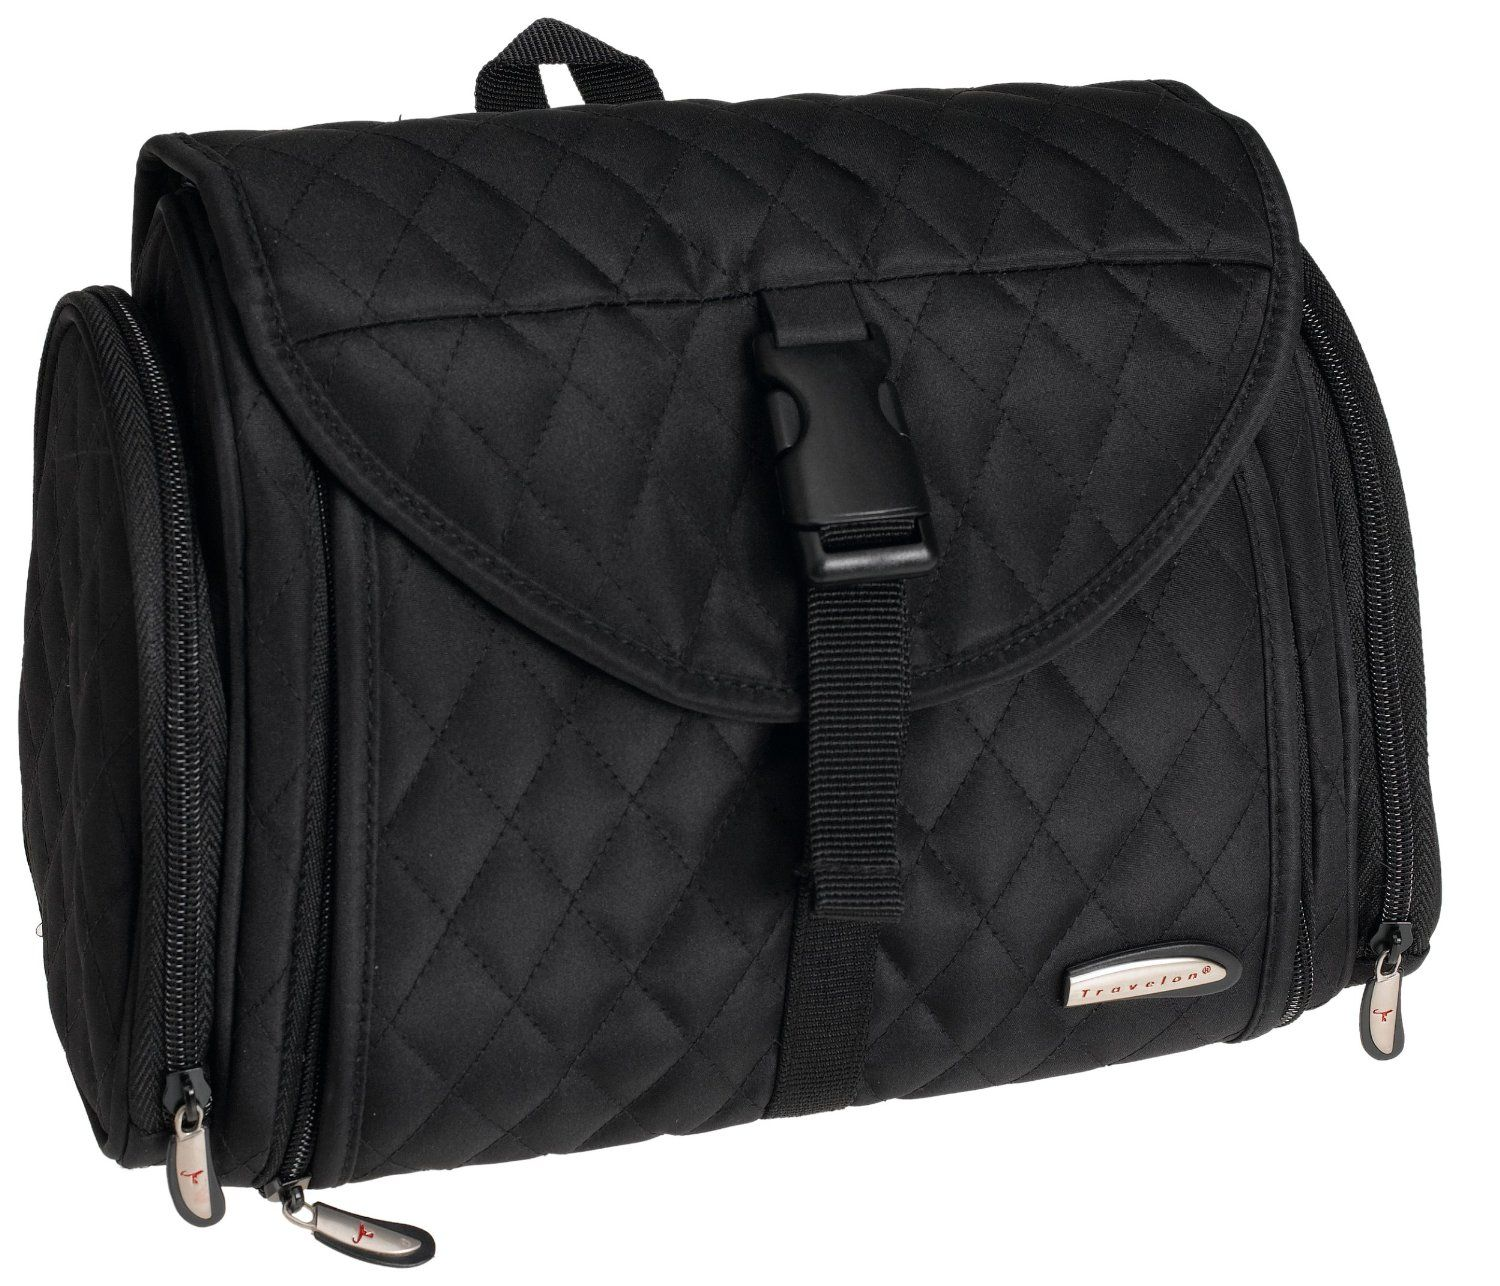 9e24bf41a783 Travelon Hanging Toiletry Kit. #beauty, #tools, #bags, #cases ...